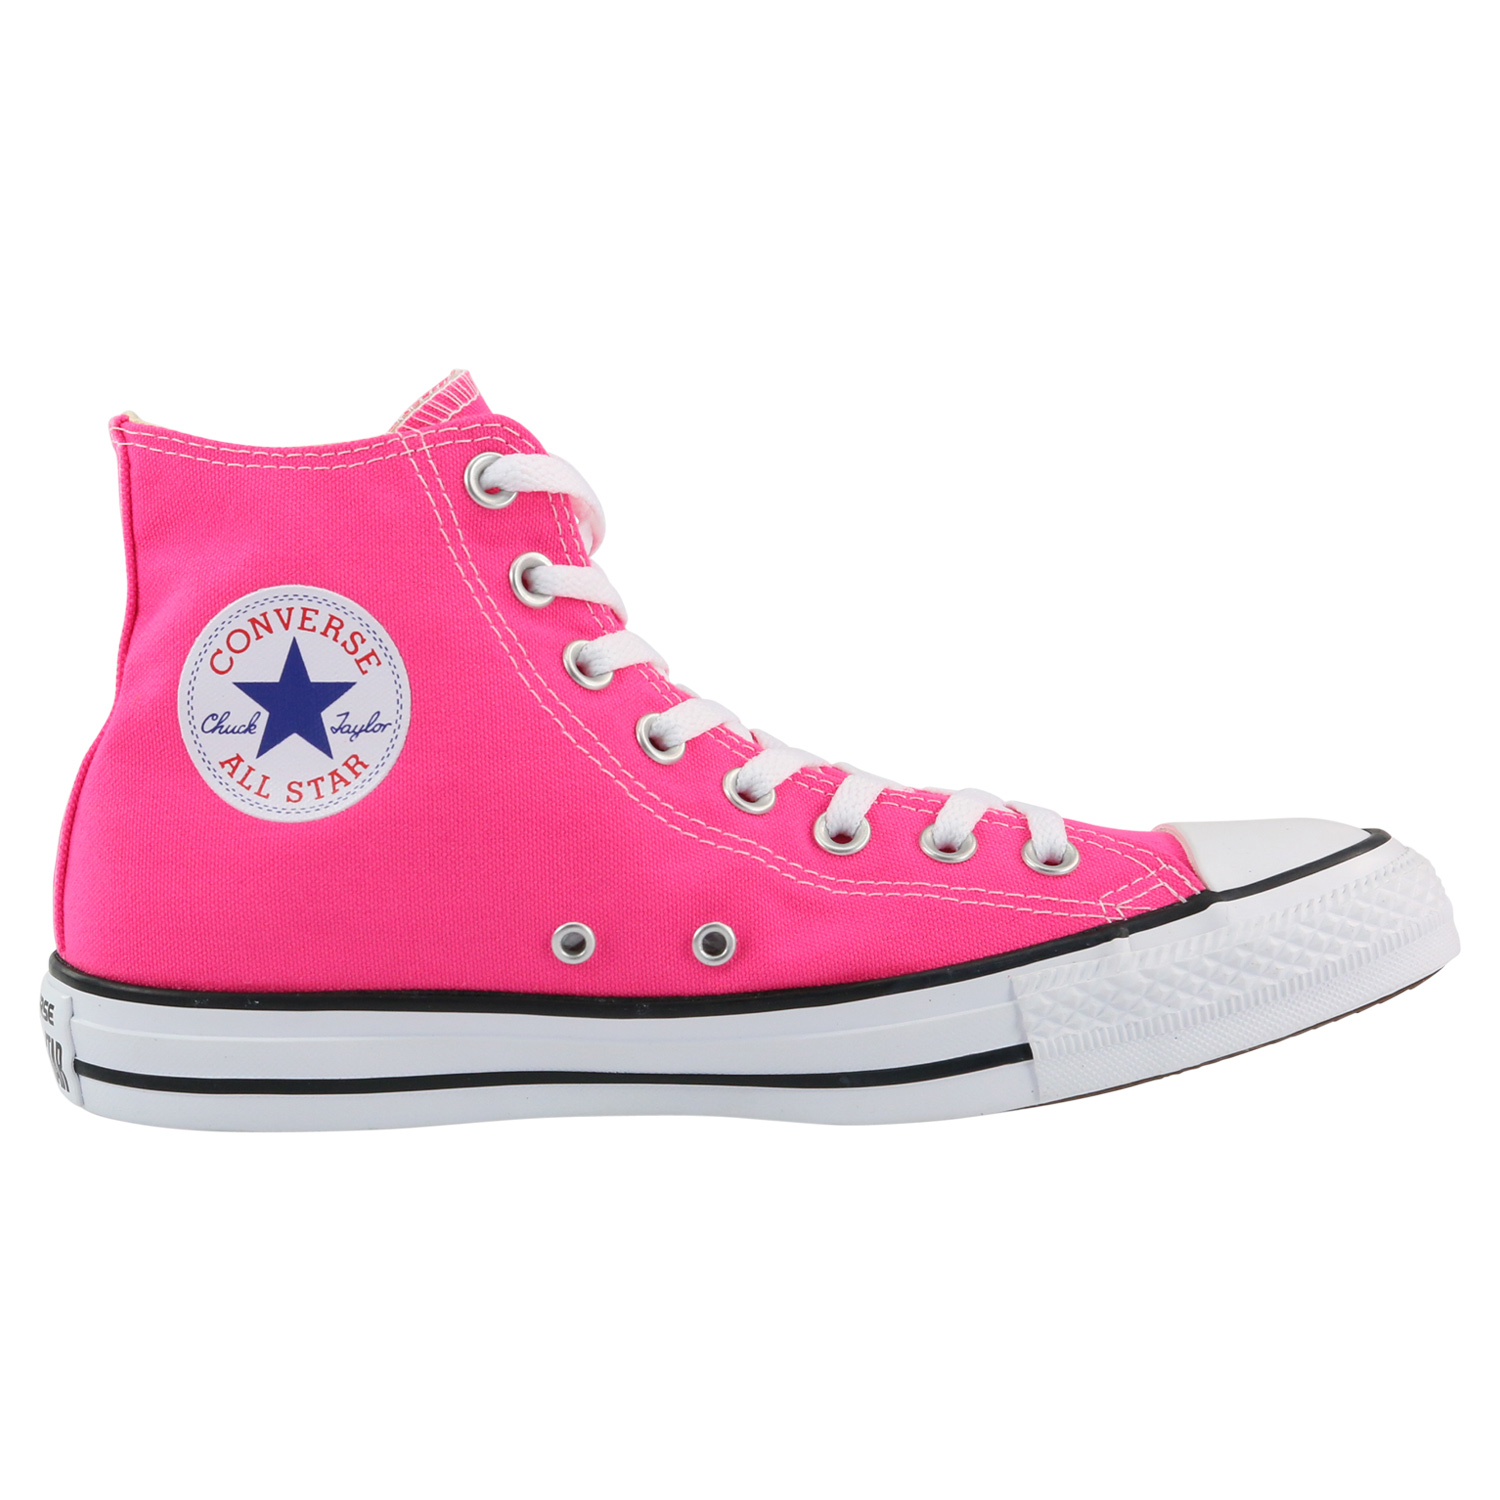 converse chuck taylor all star hi schuhe turnschuhe. Black Bedroom Furniture Sets. Home Design Ideas